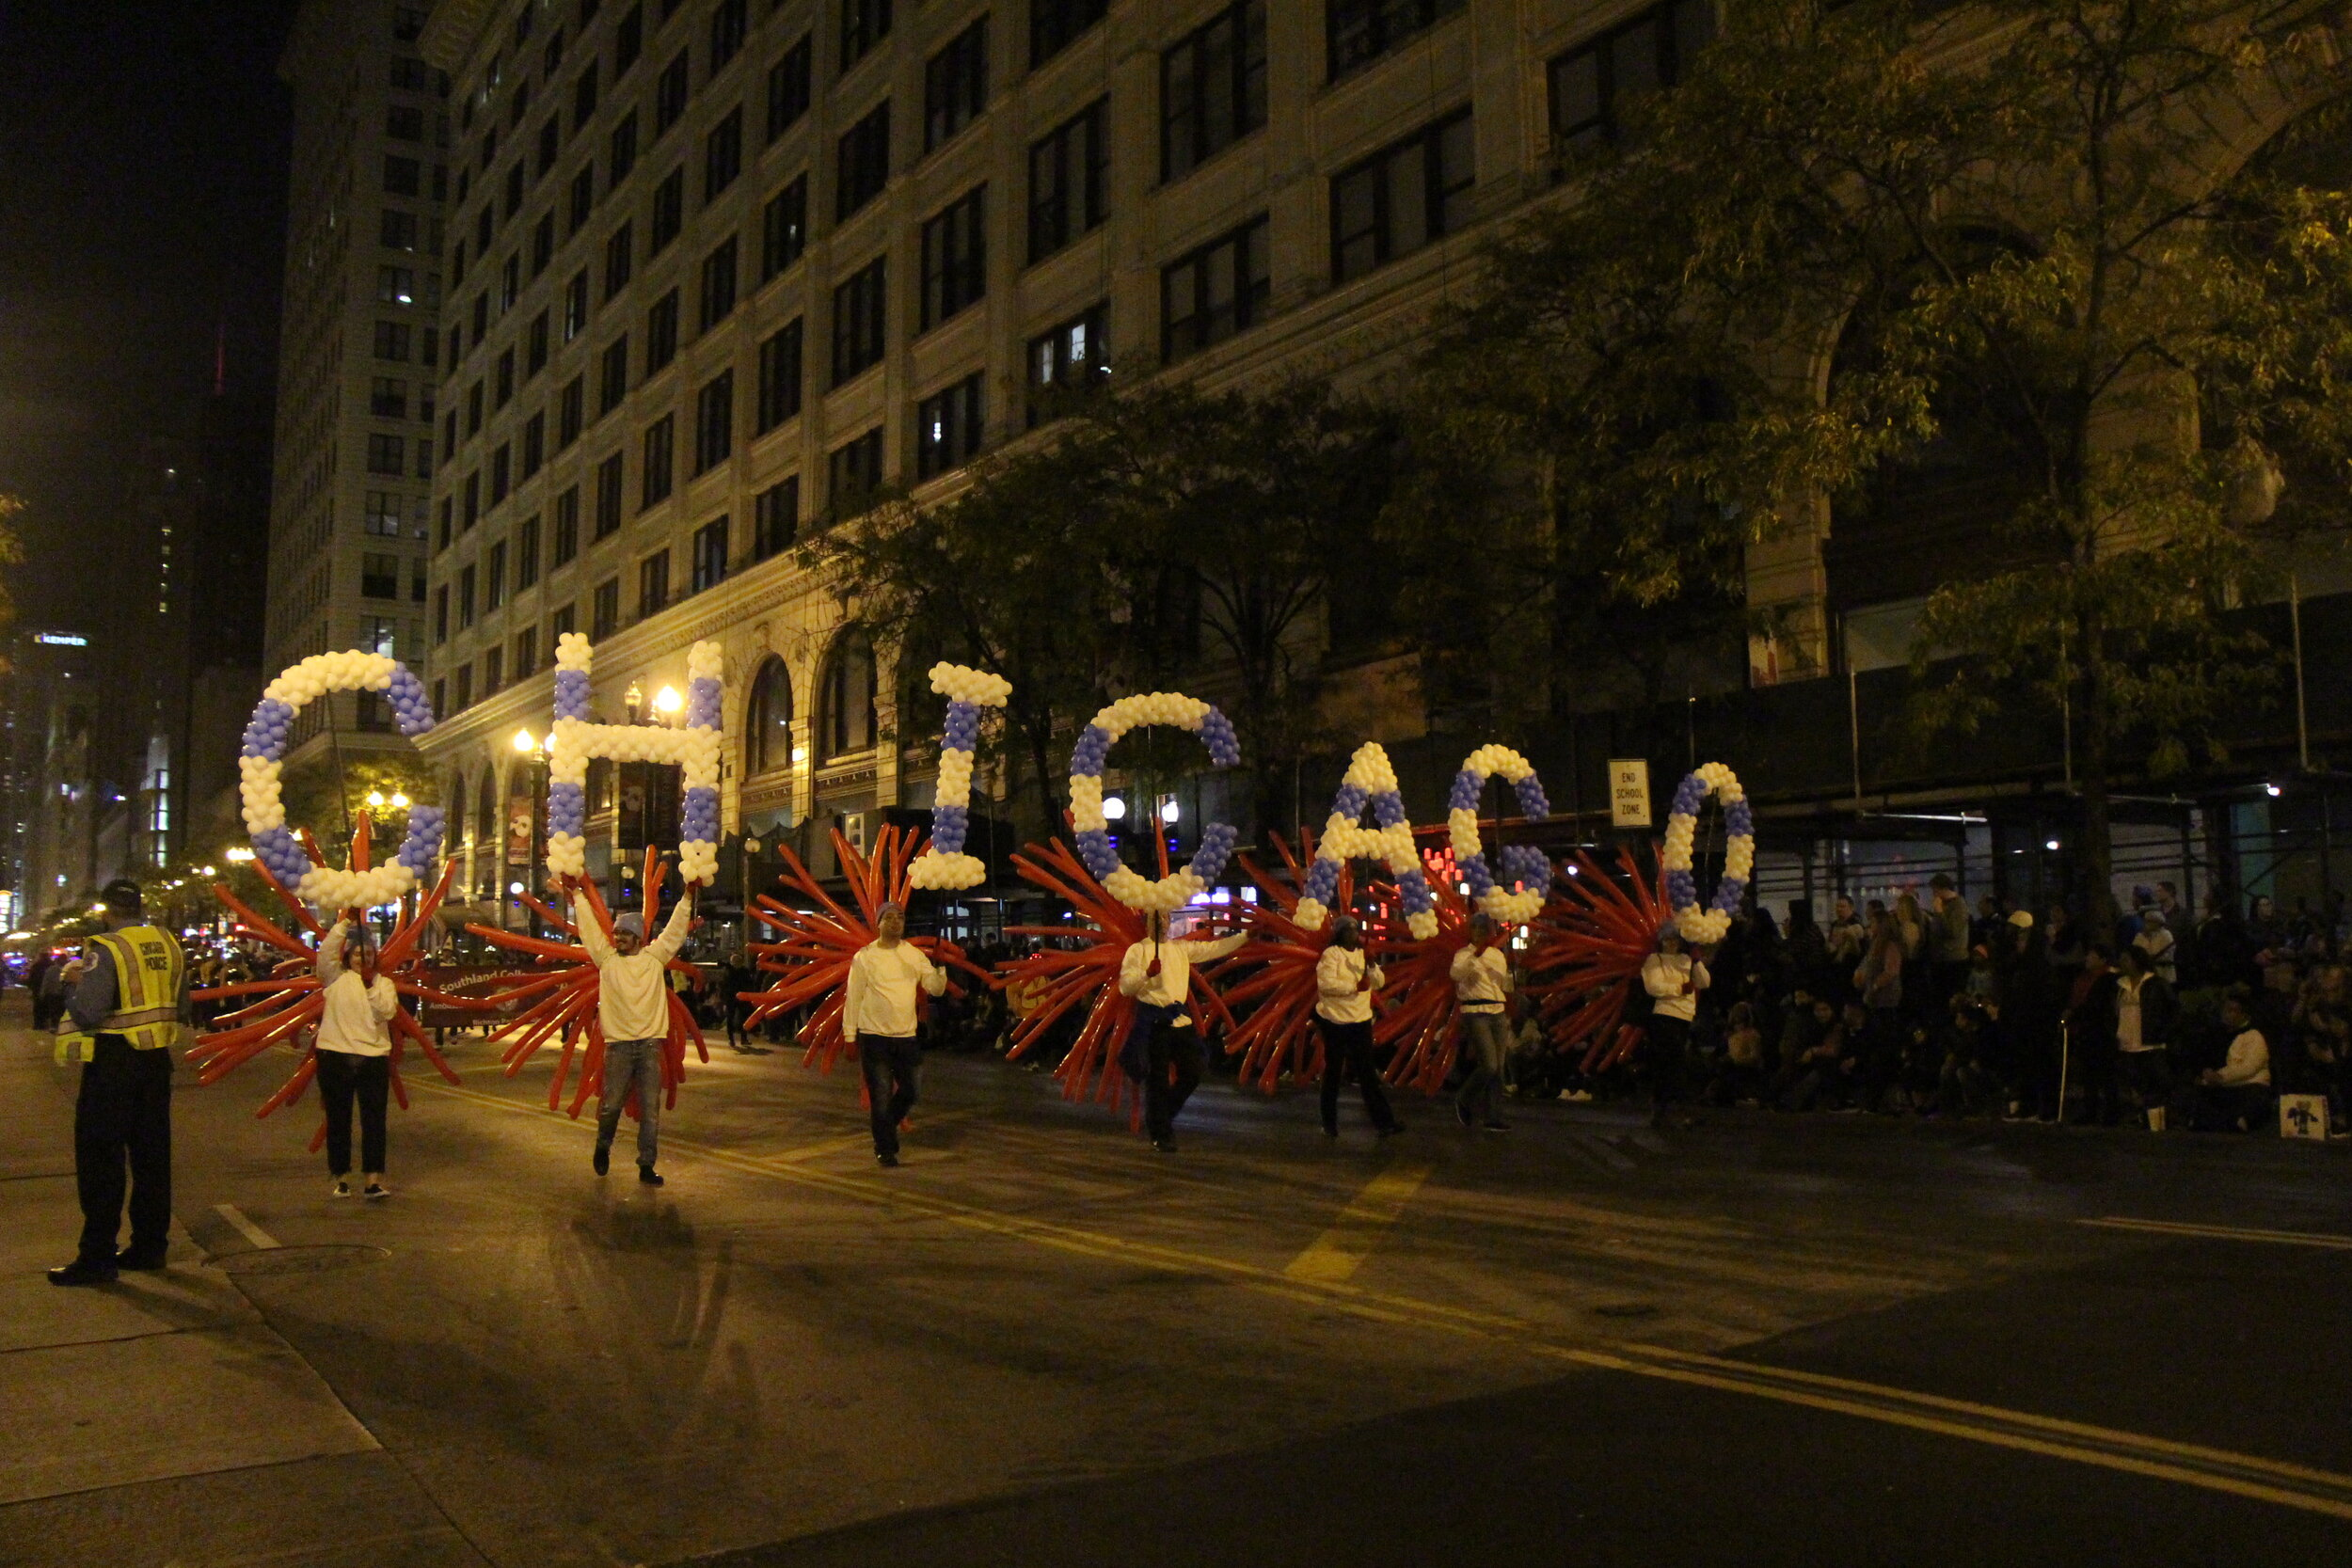 Chicago representing itself at the Art in the Dark parade that was held at Downtown Chicago, on State and street.